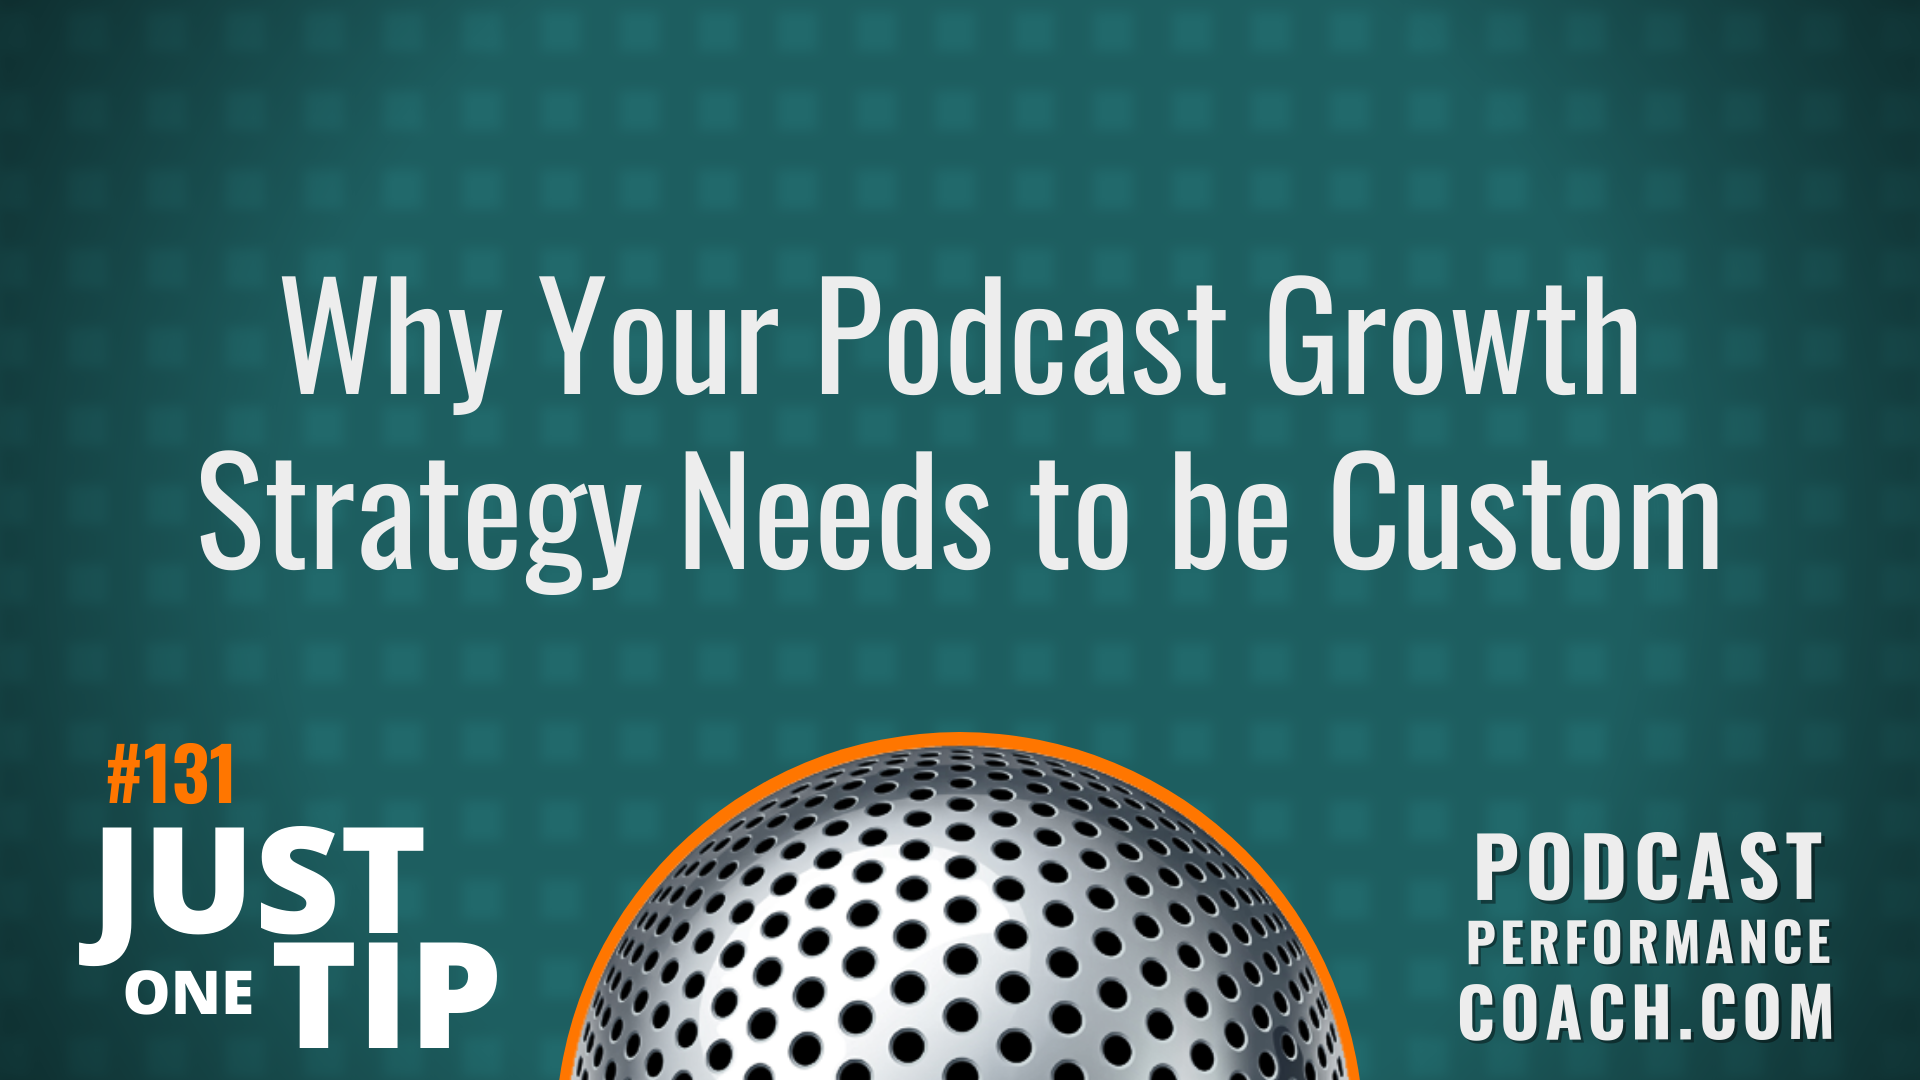 131 Why Your Podcast Growth Strategy Needs to be Custom